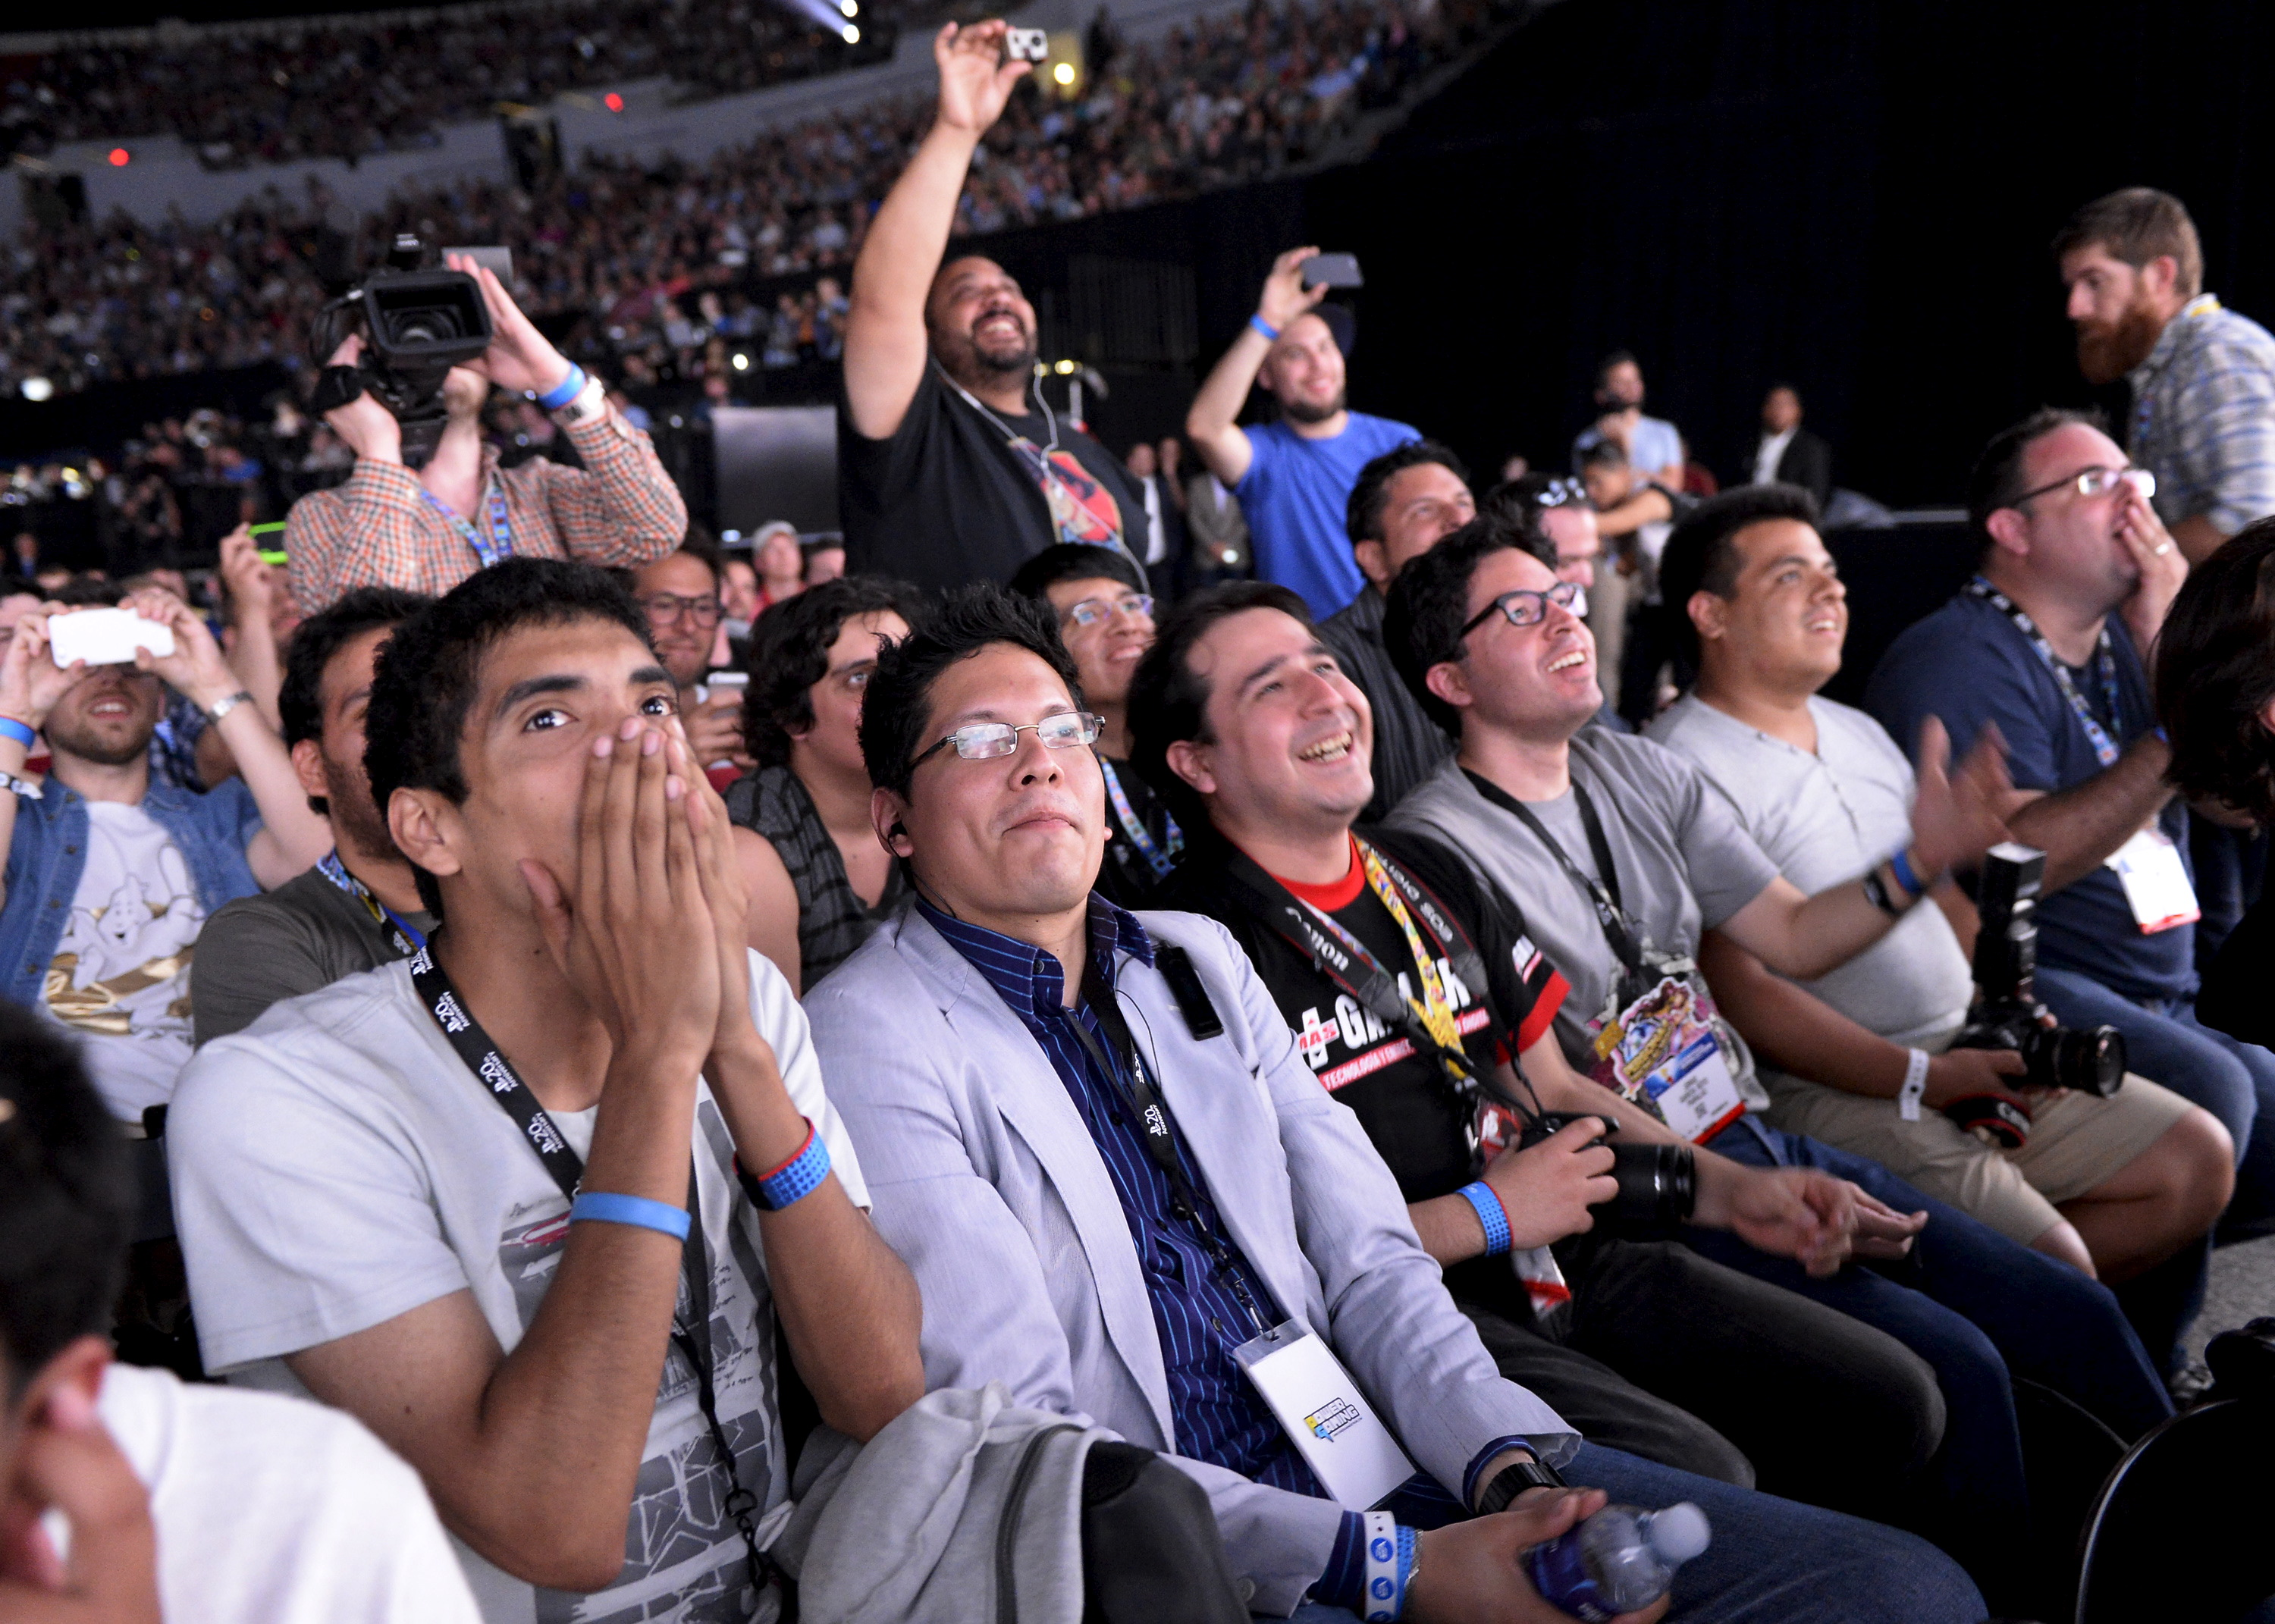 Attendees react during a video game presentation at the Sony Playstation E3 conference in Los Angeles, California June 15, 2015. REUTERS/Kevork Djansezian